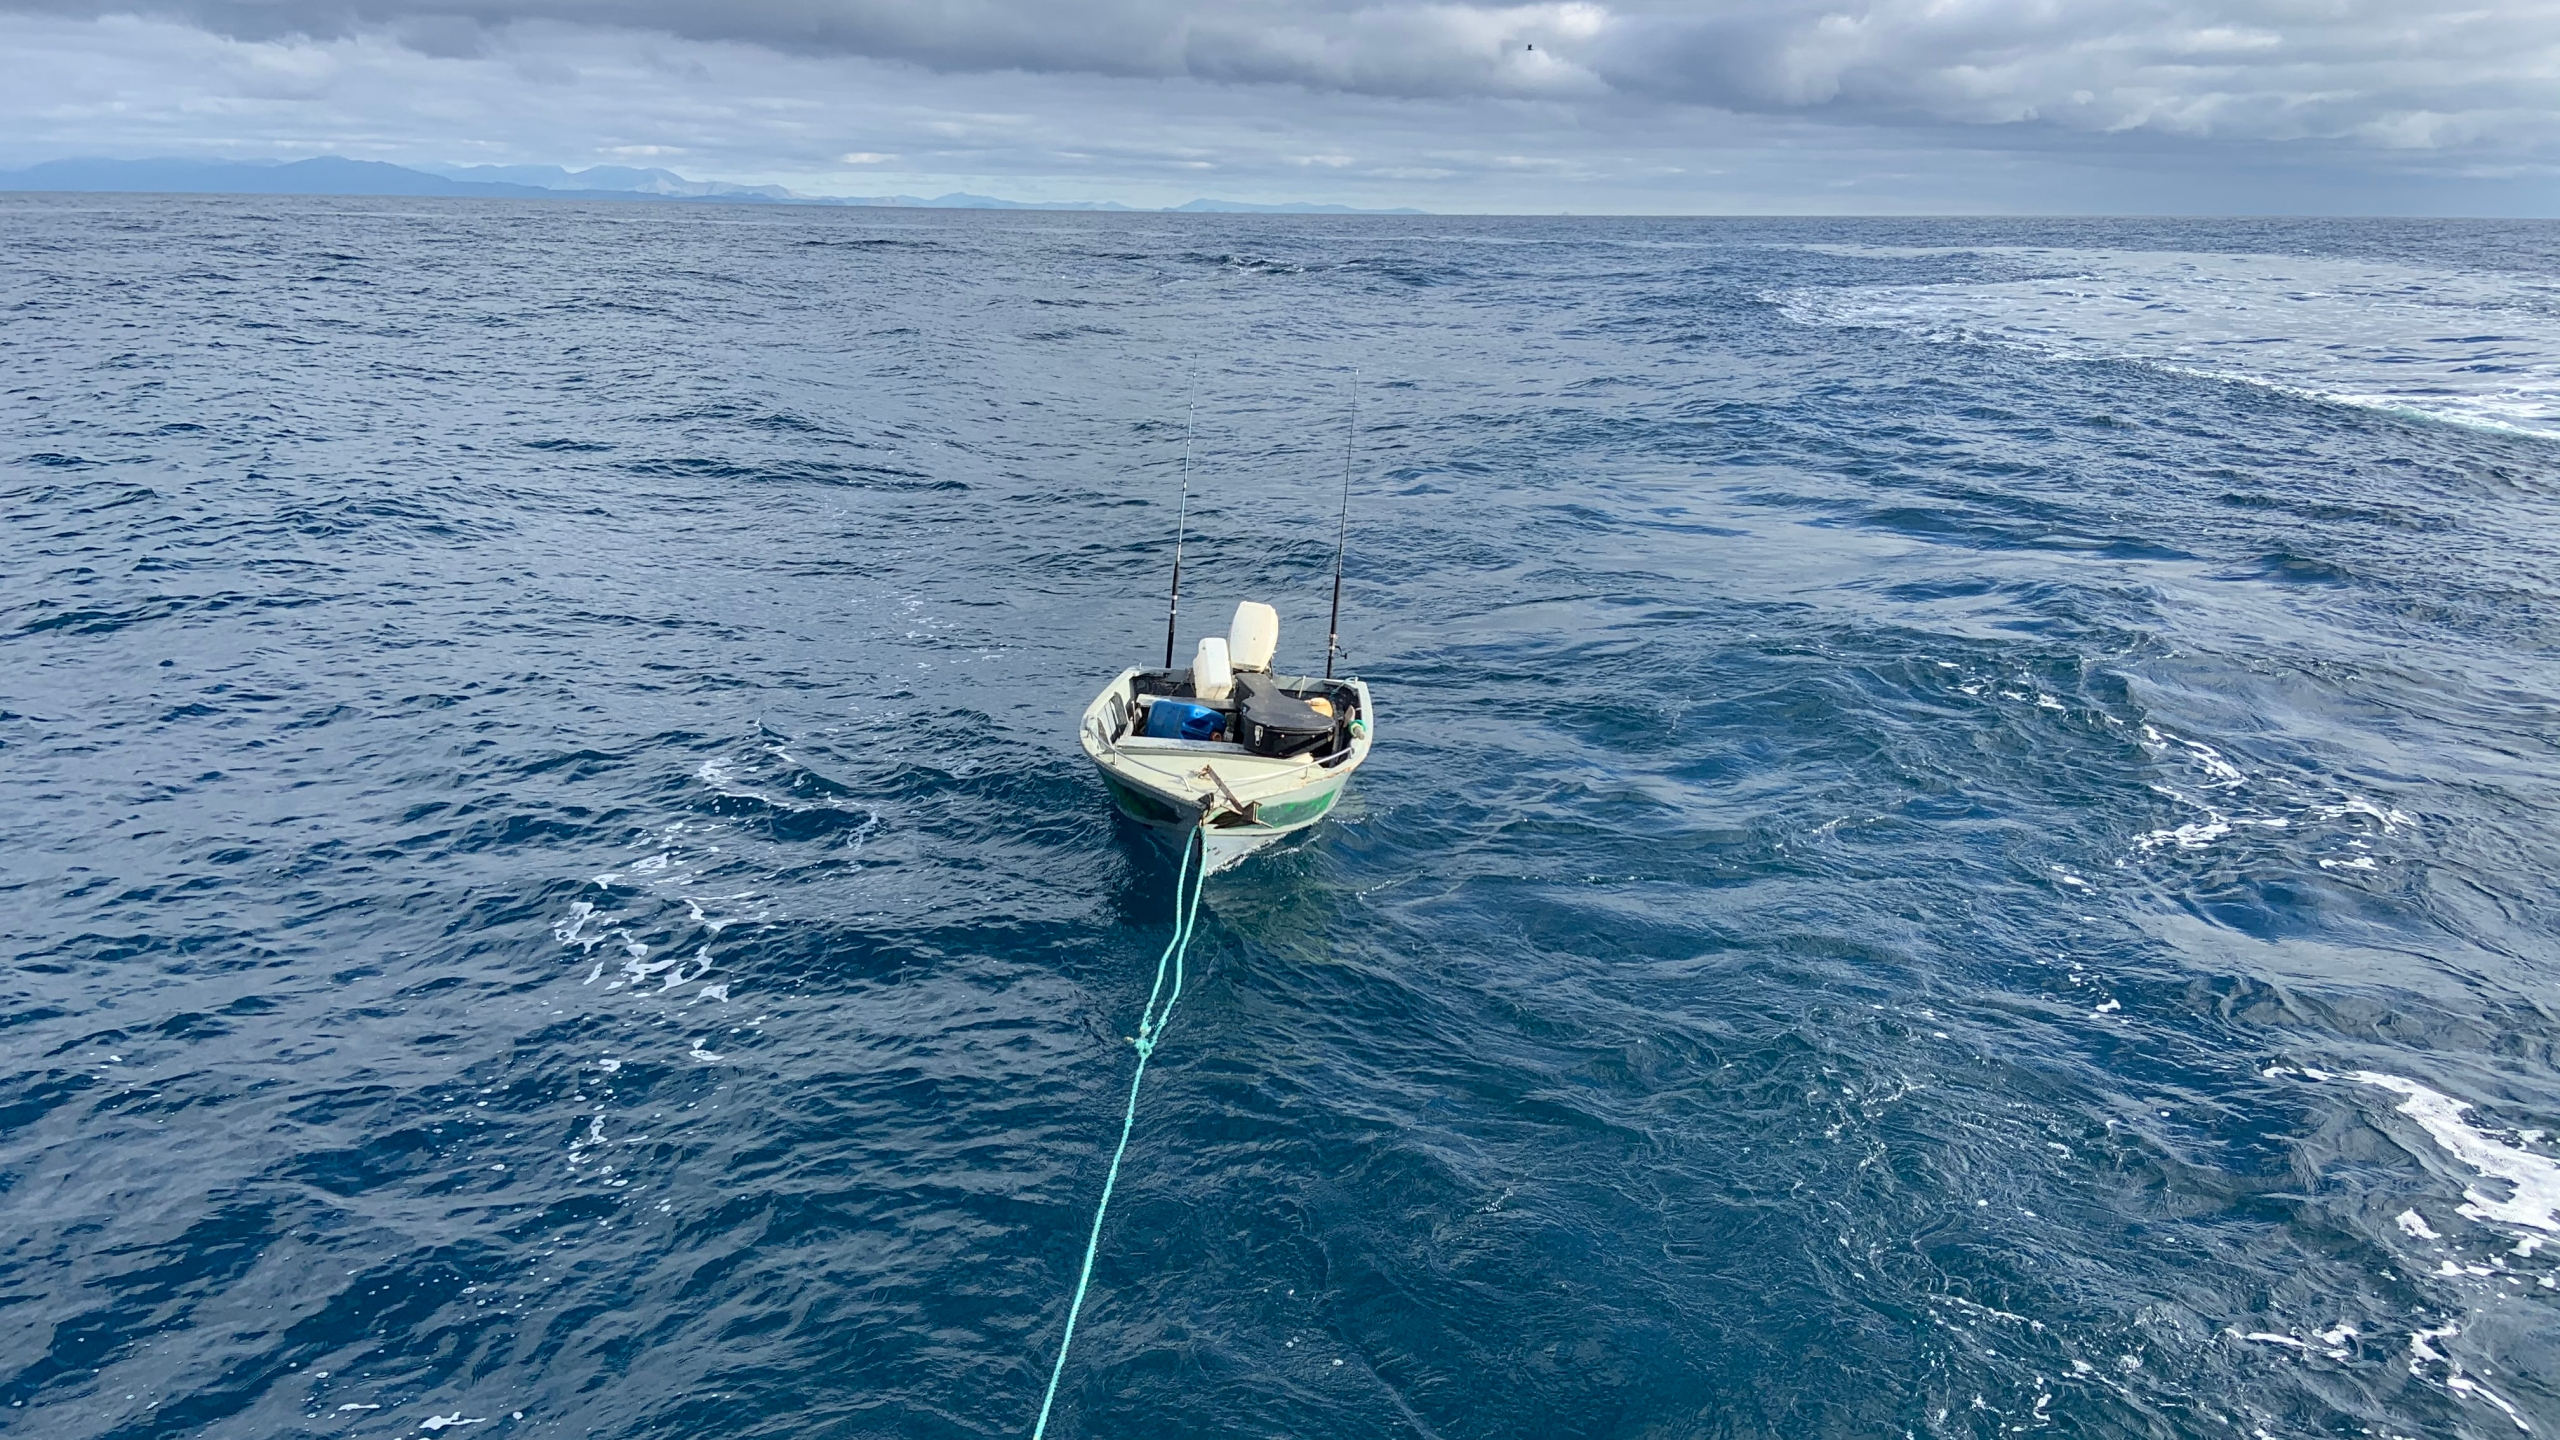 A teen who attempted a trip across the Cook Strait in a dinghy had to be rescued by authorities. (New Zealand Police)